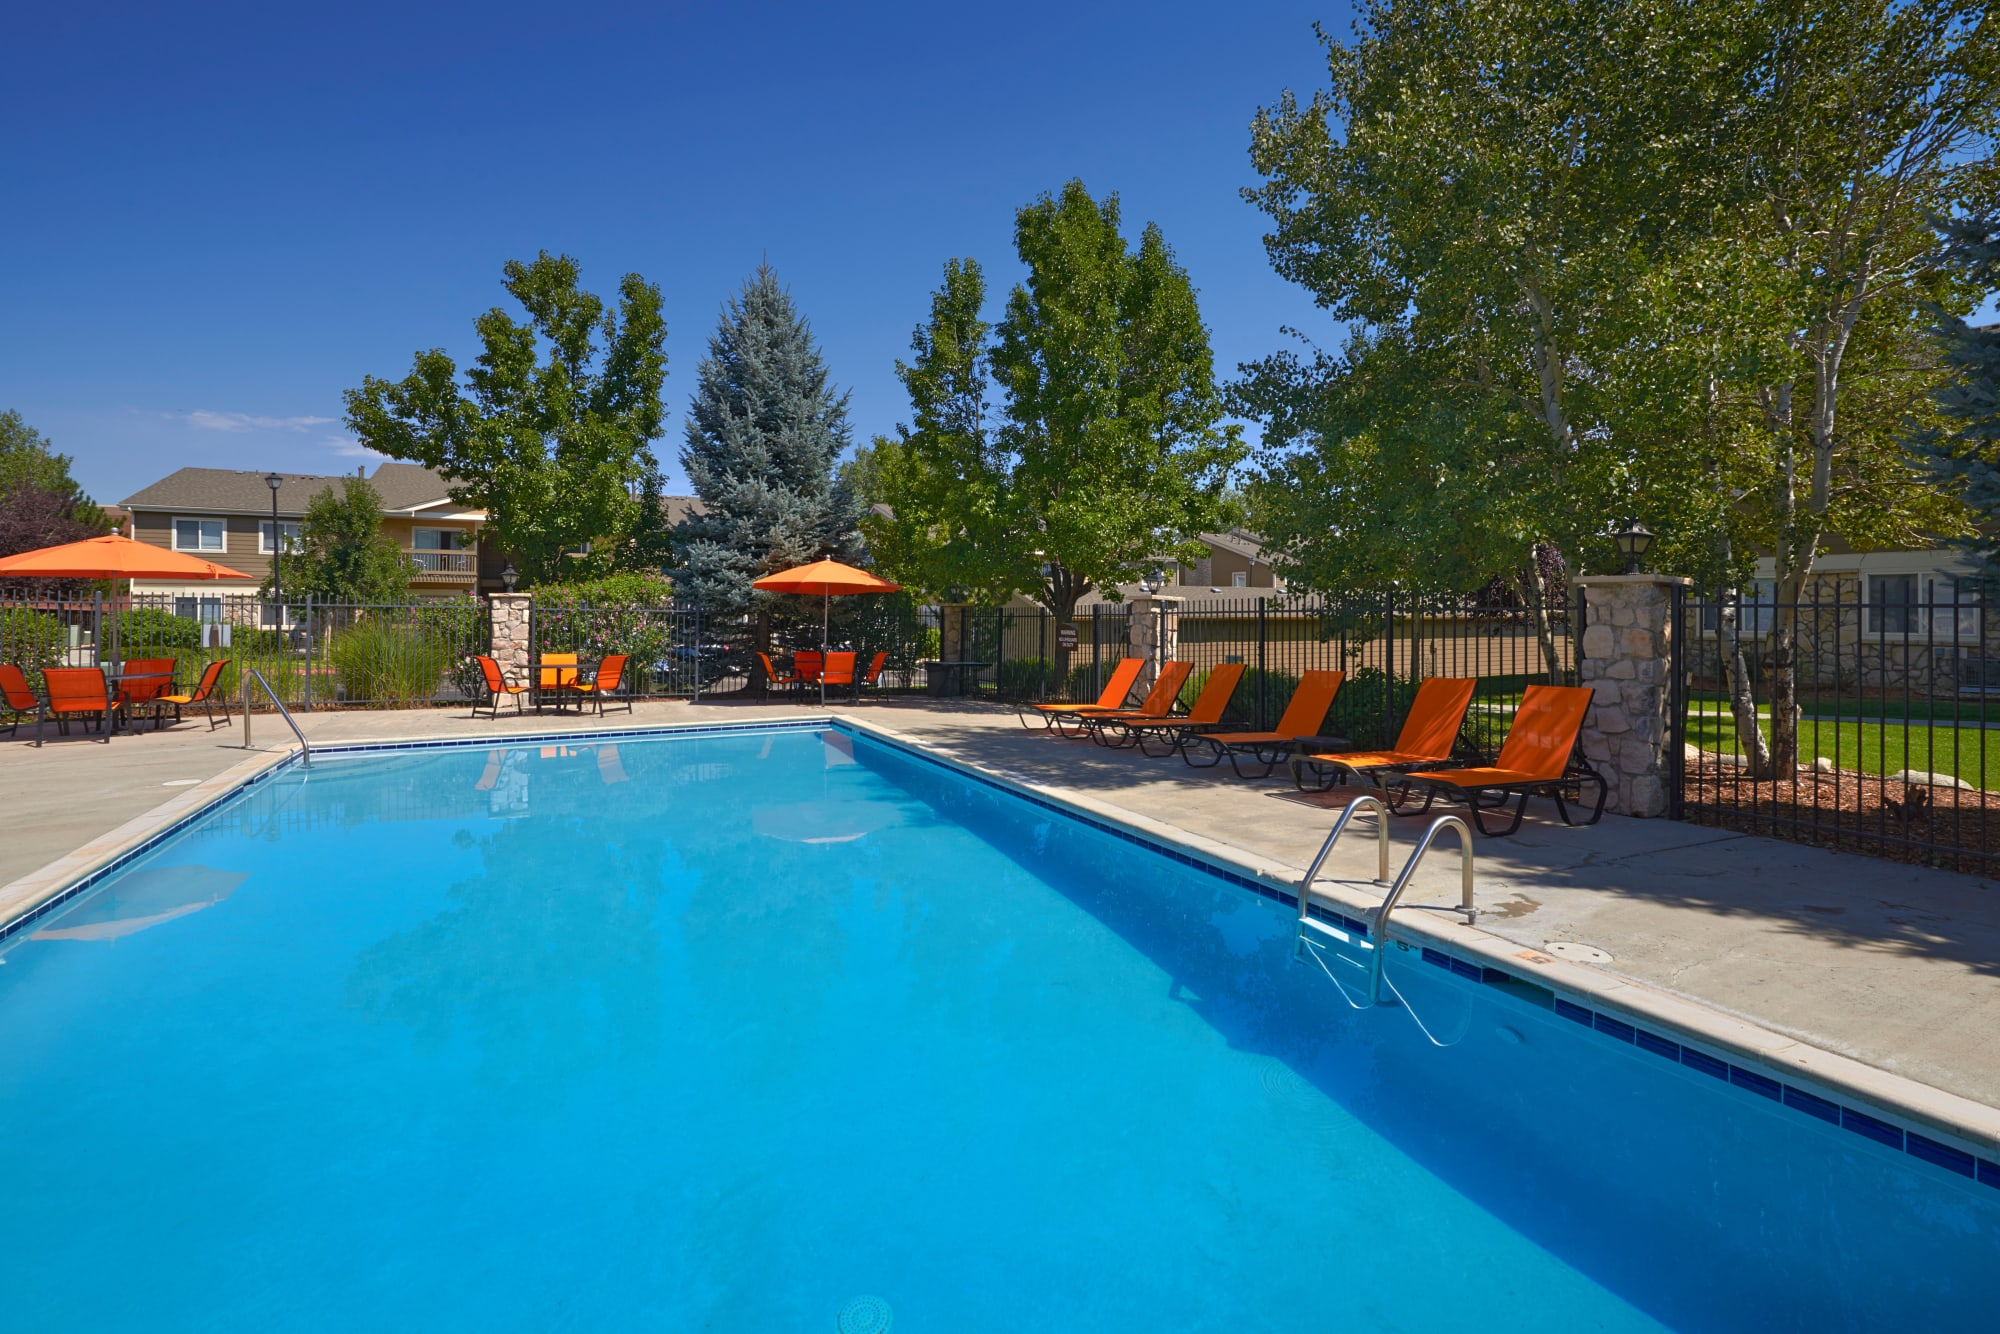 Pool with lounge chairs and umbrellas at Crossroads at City Center Apartments in Aurora, Colorado